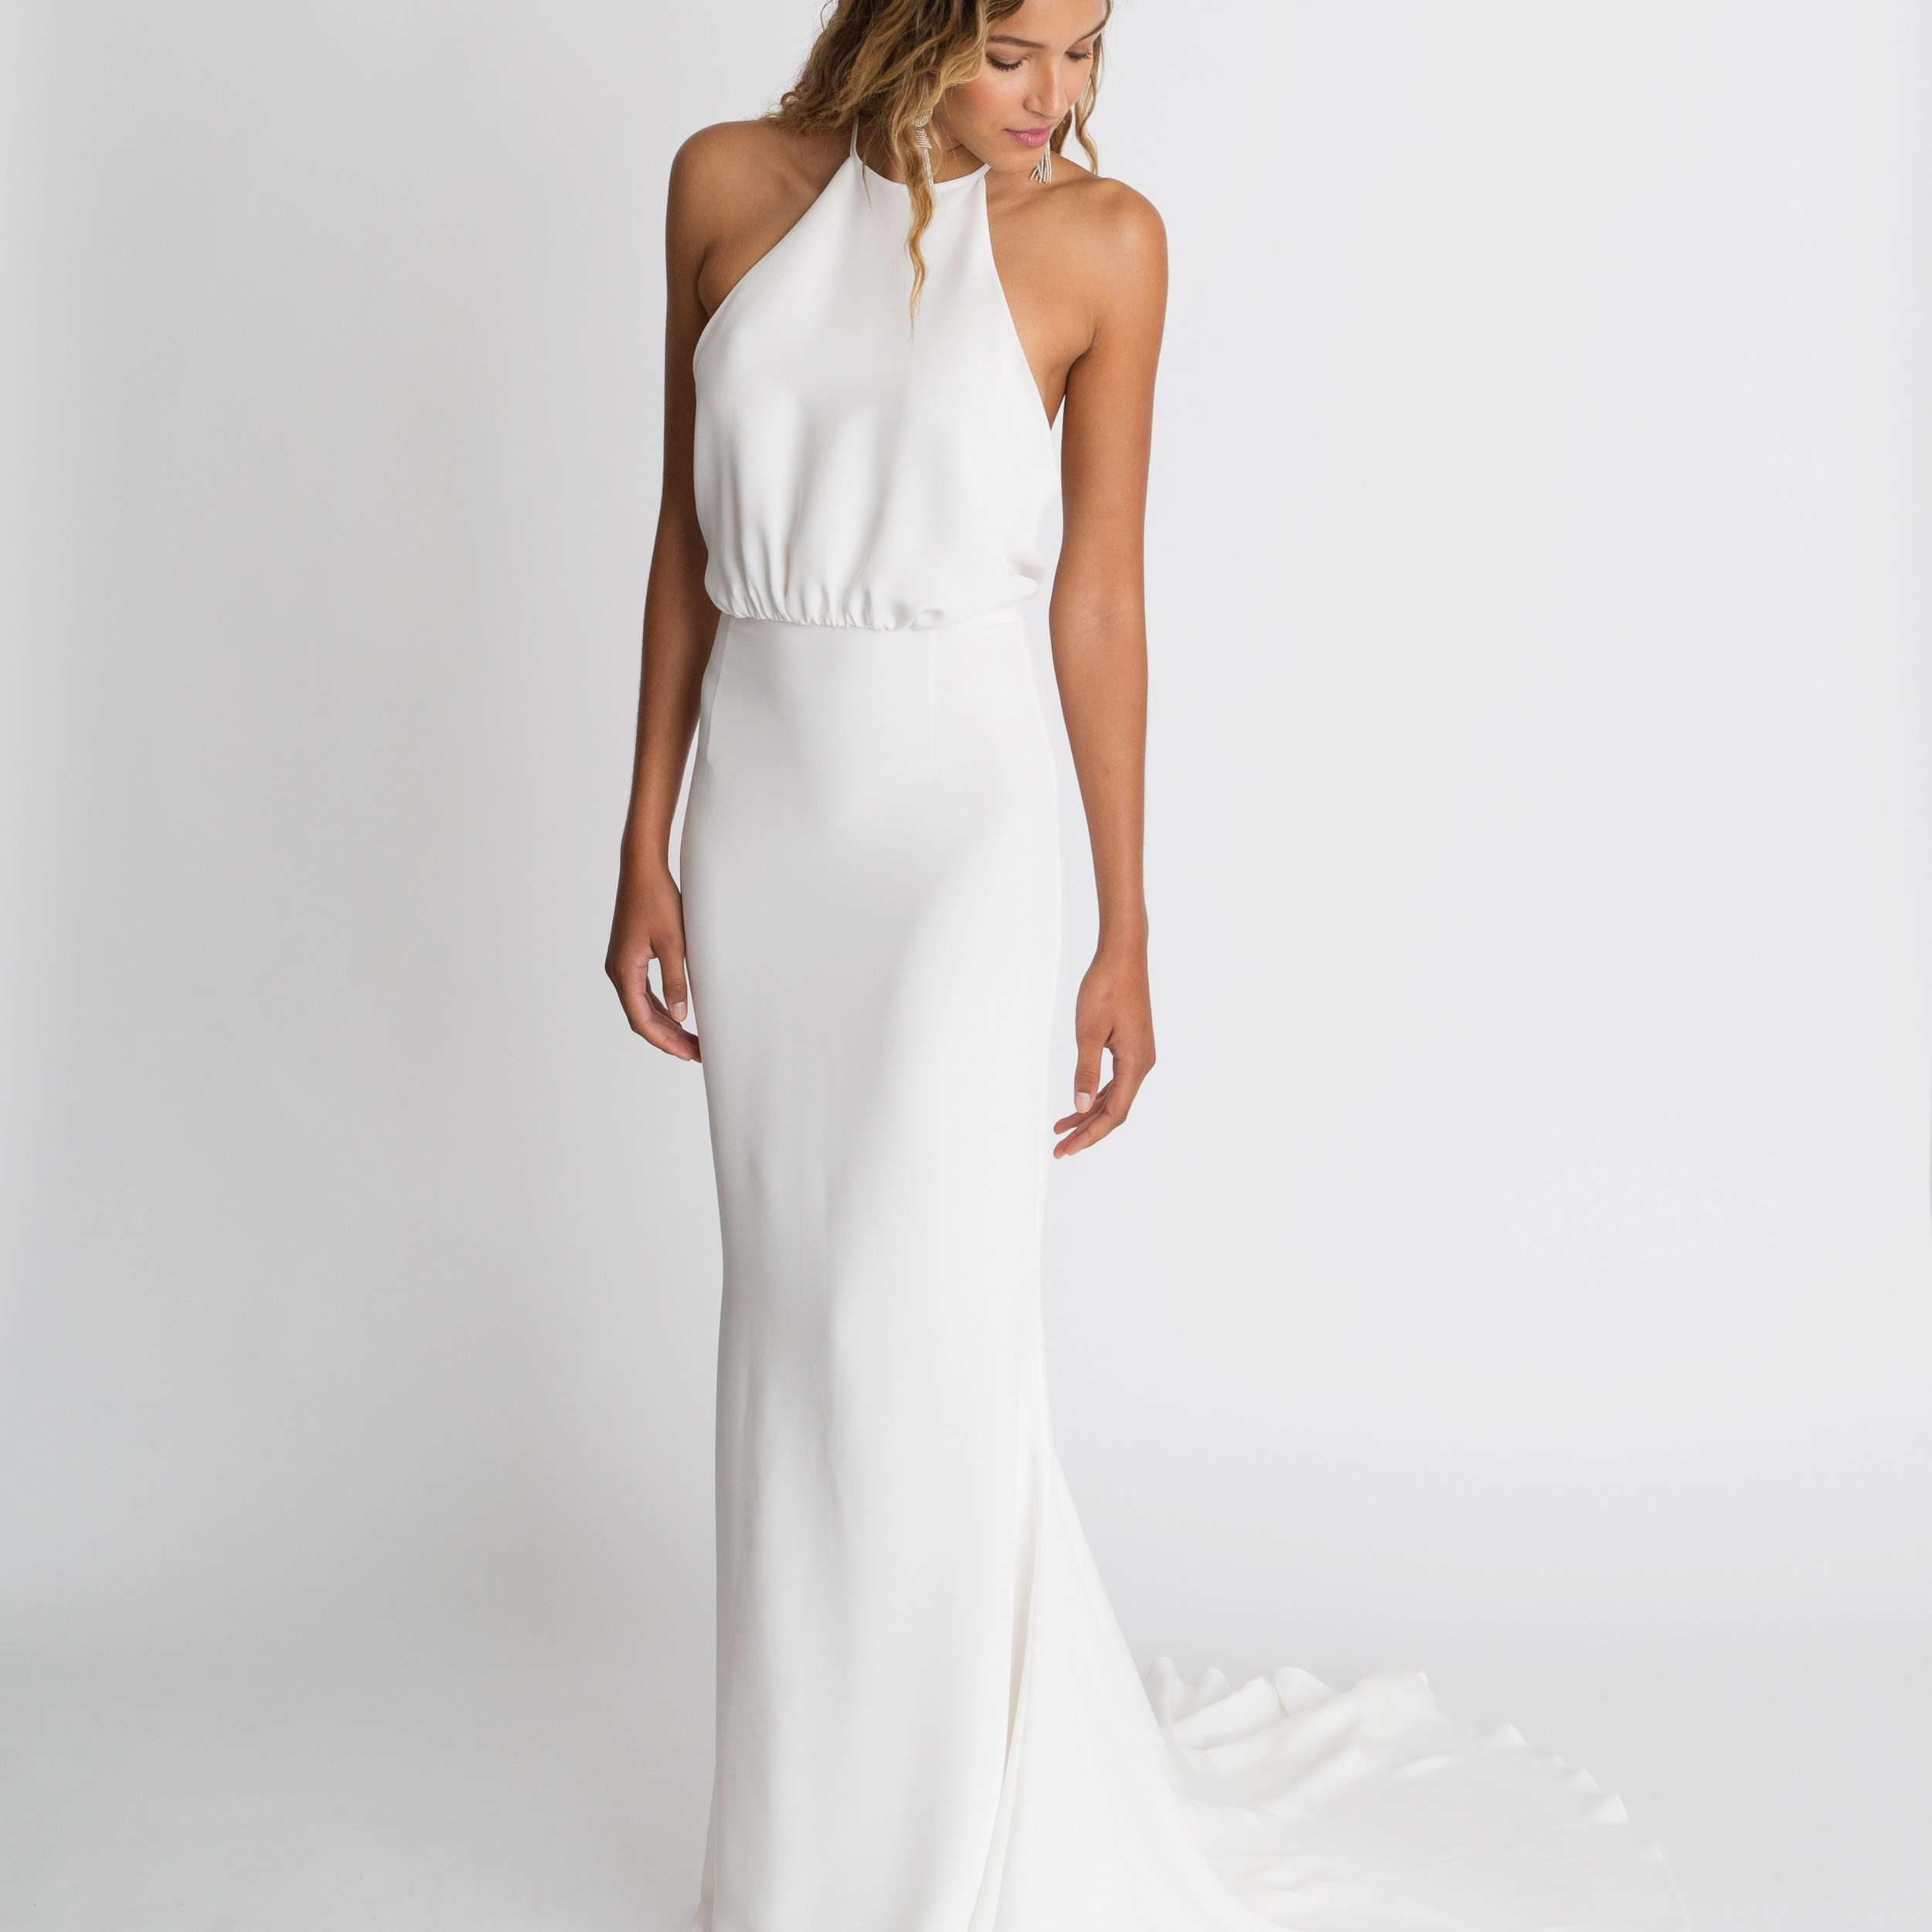 High Neck Wedding Dresses 46 Elegant Options For Every Style